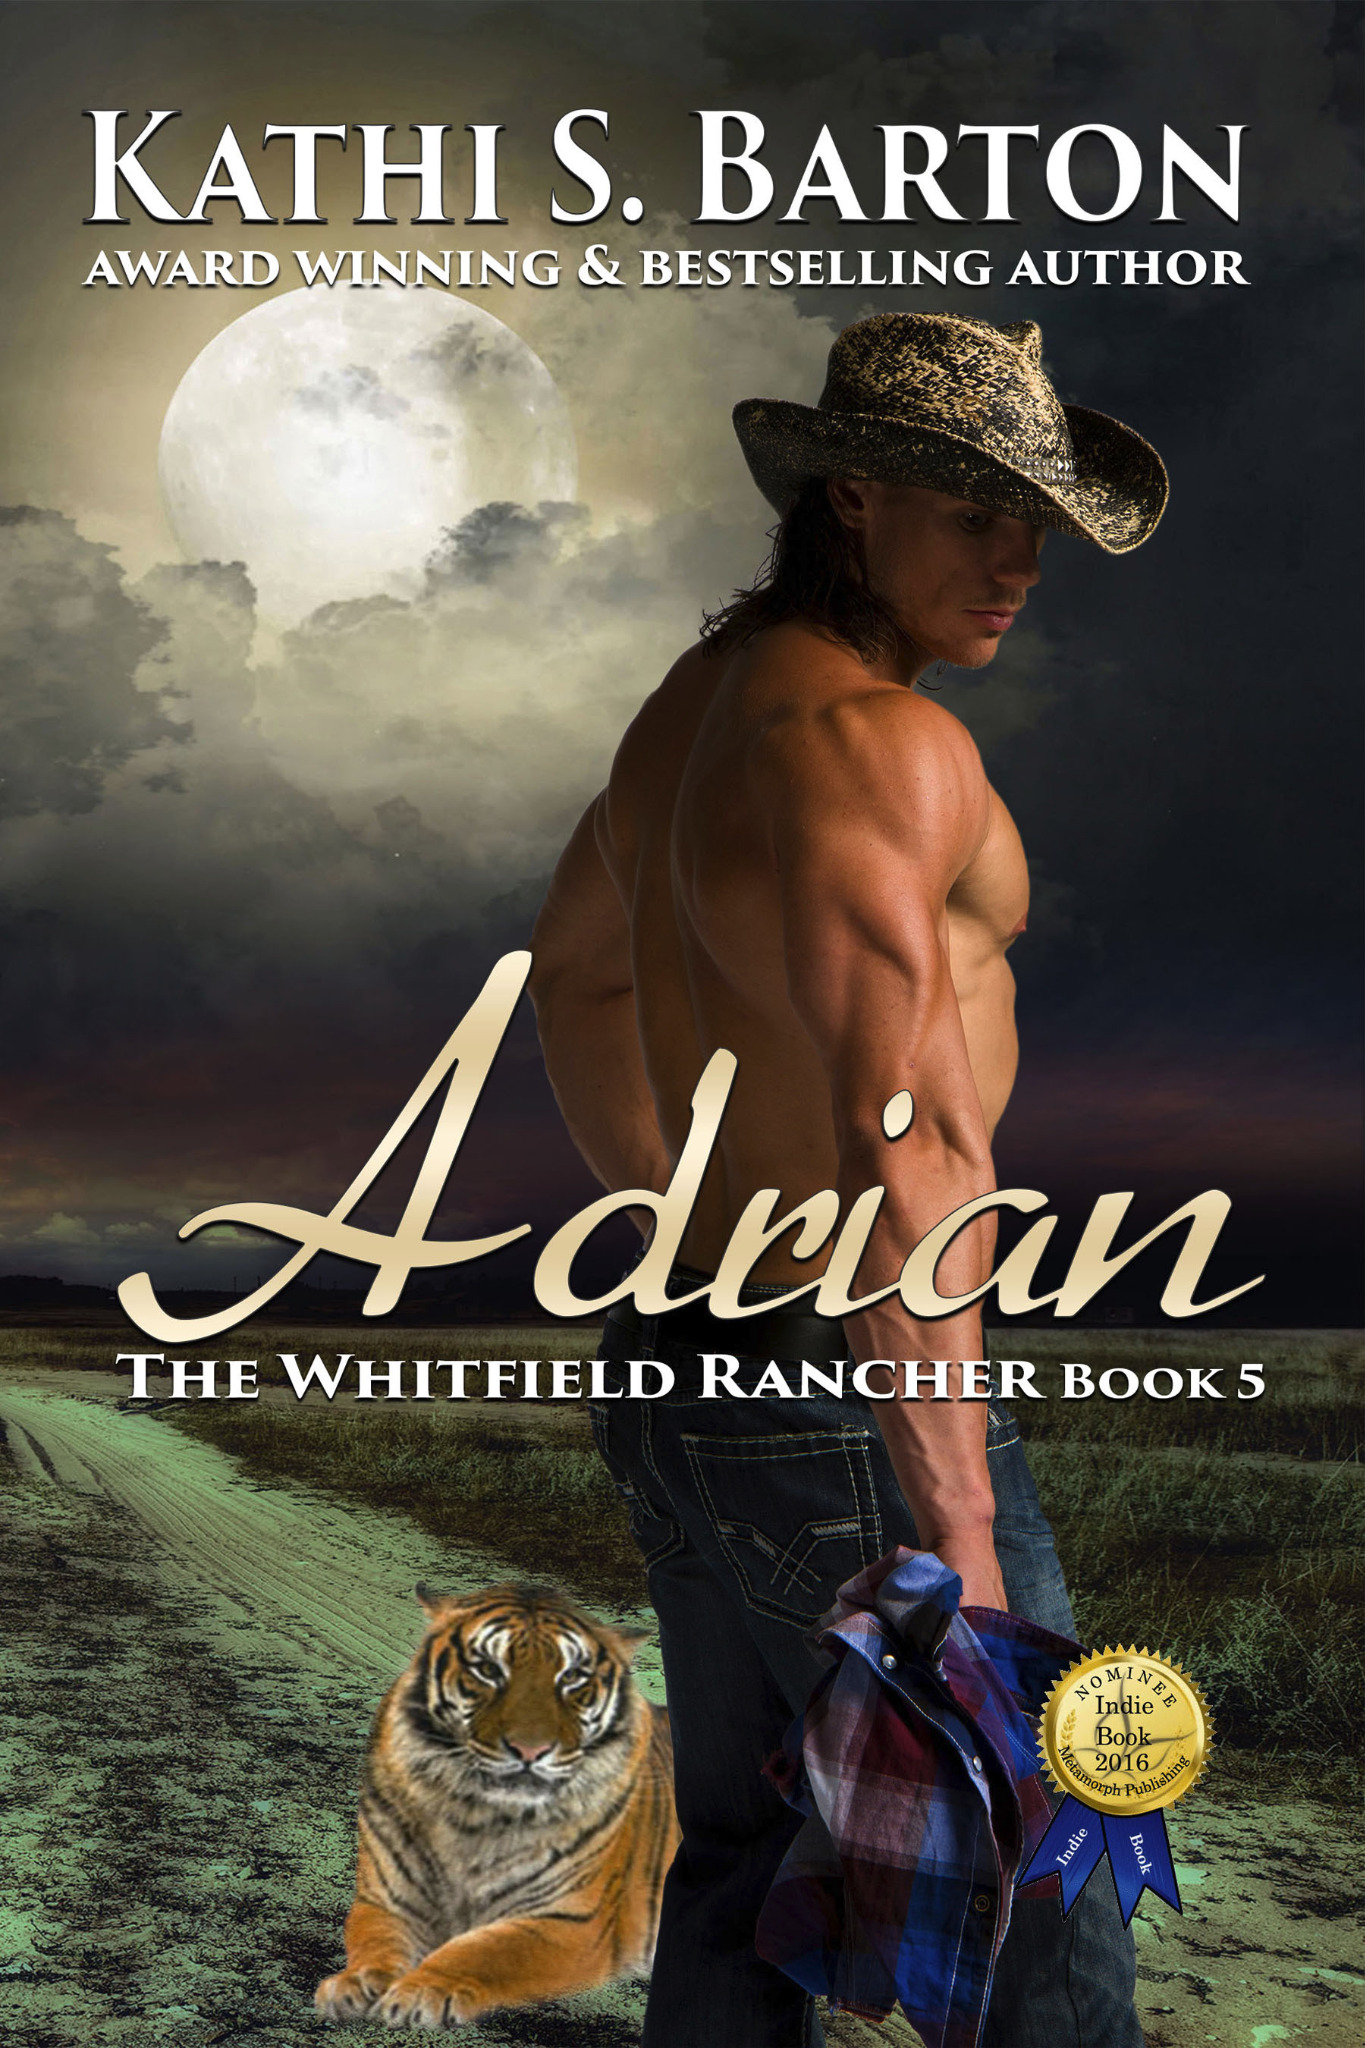 Adrian - The Whitfield Rancher Book 5